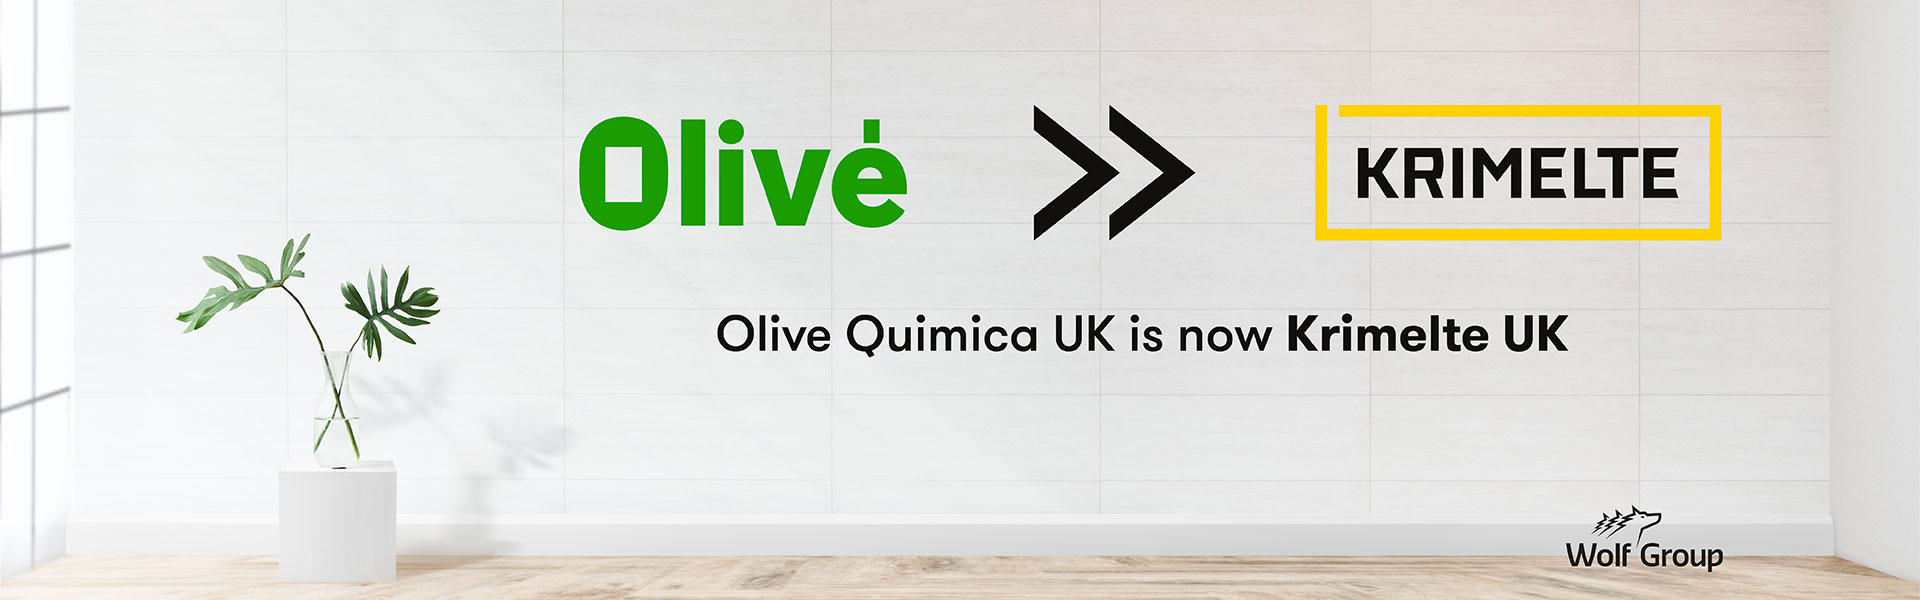 Olive Quimica UK is now Krimelte UK Ltd.